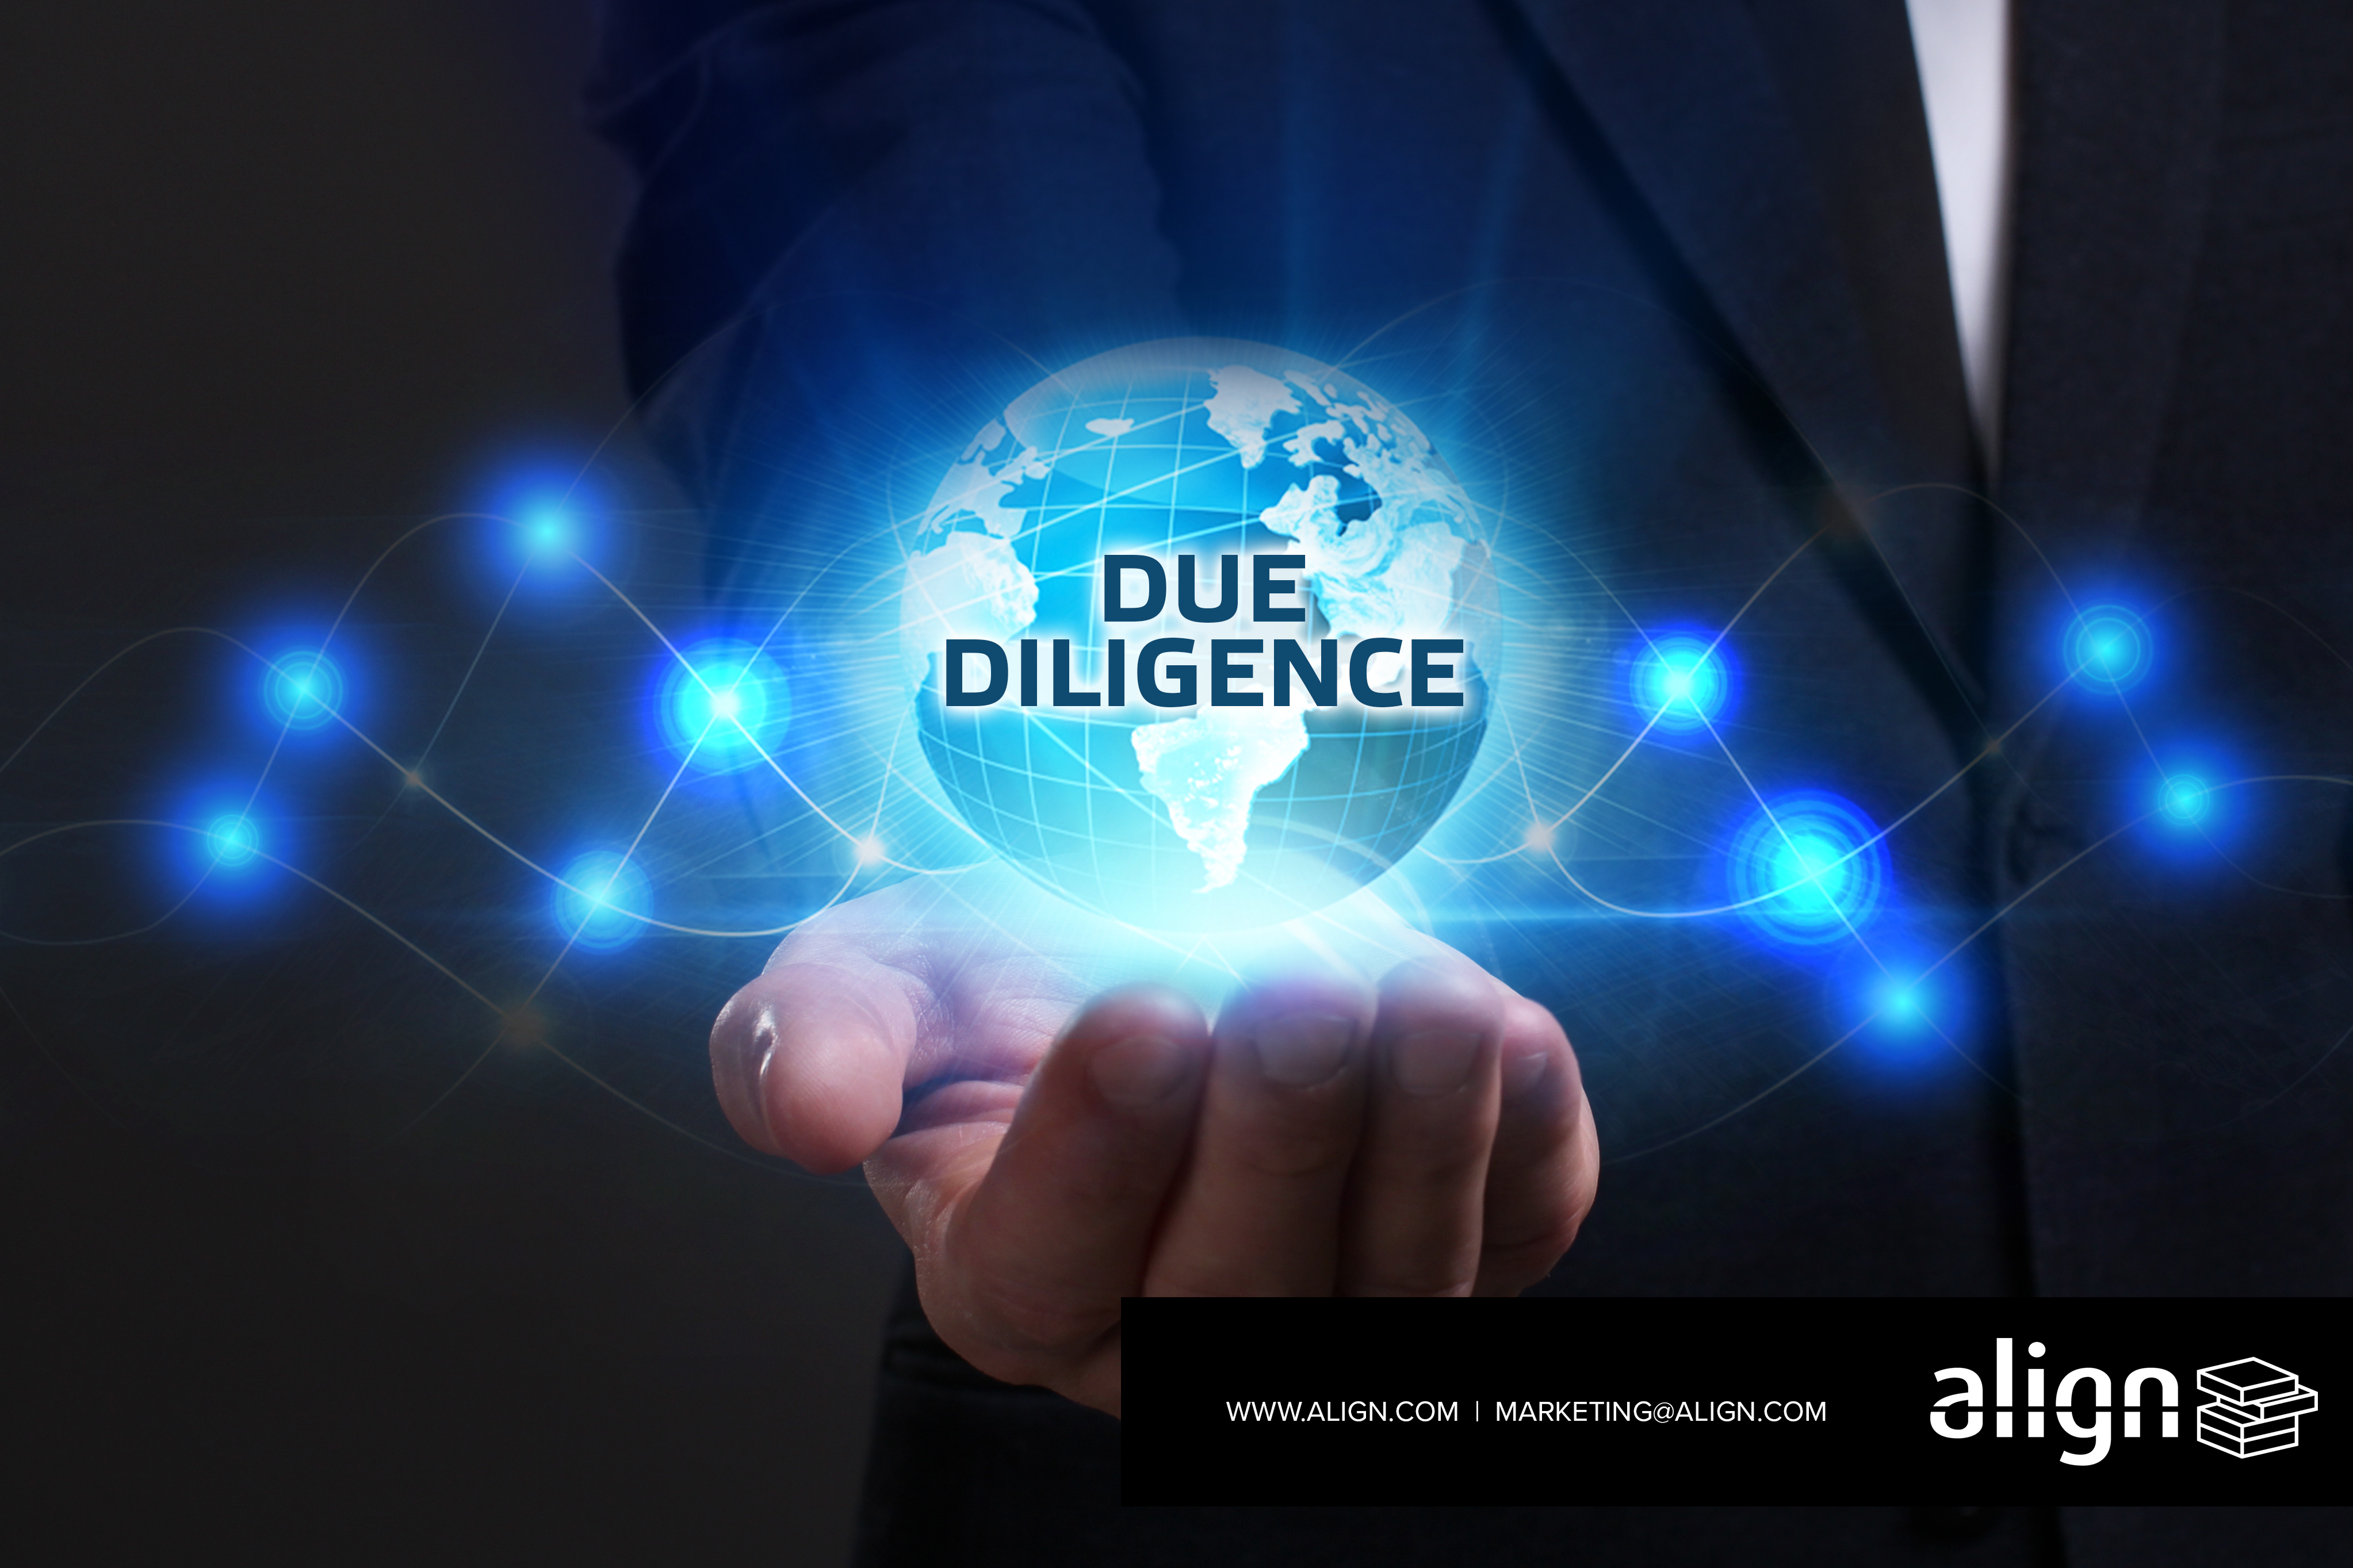 Align_Due-Diligence